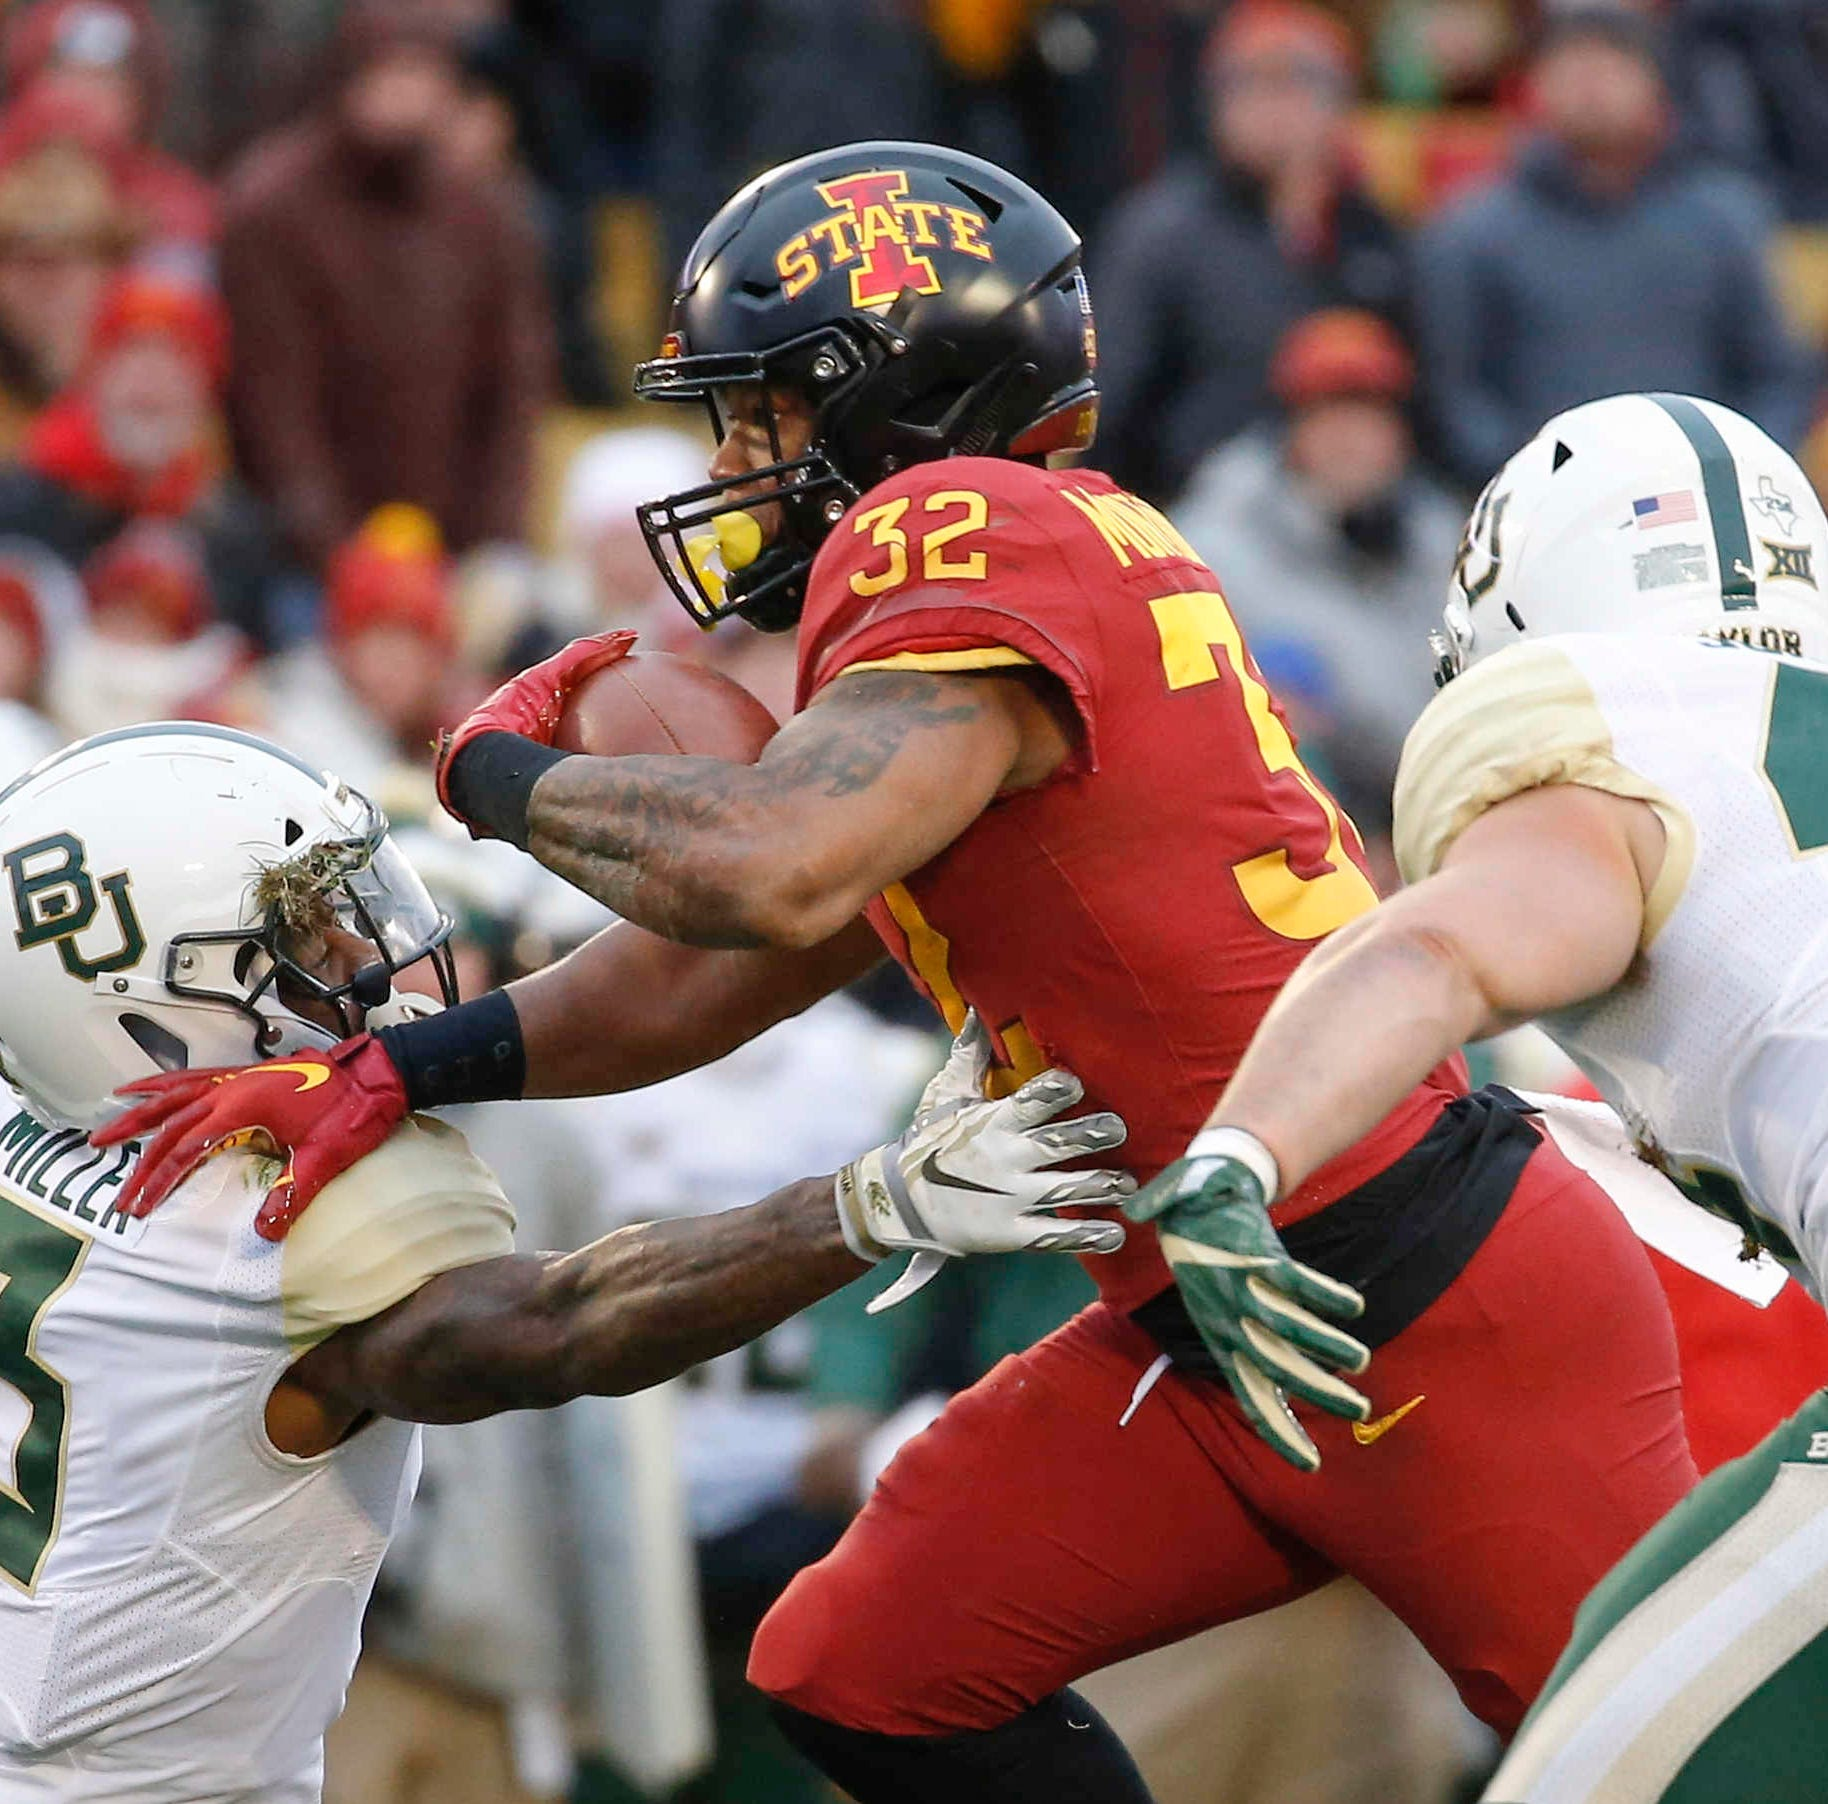 Texas expects Iowa State to rally around David Montgomery's first-half suspension